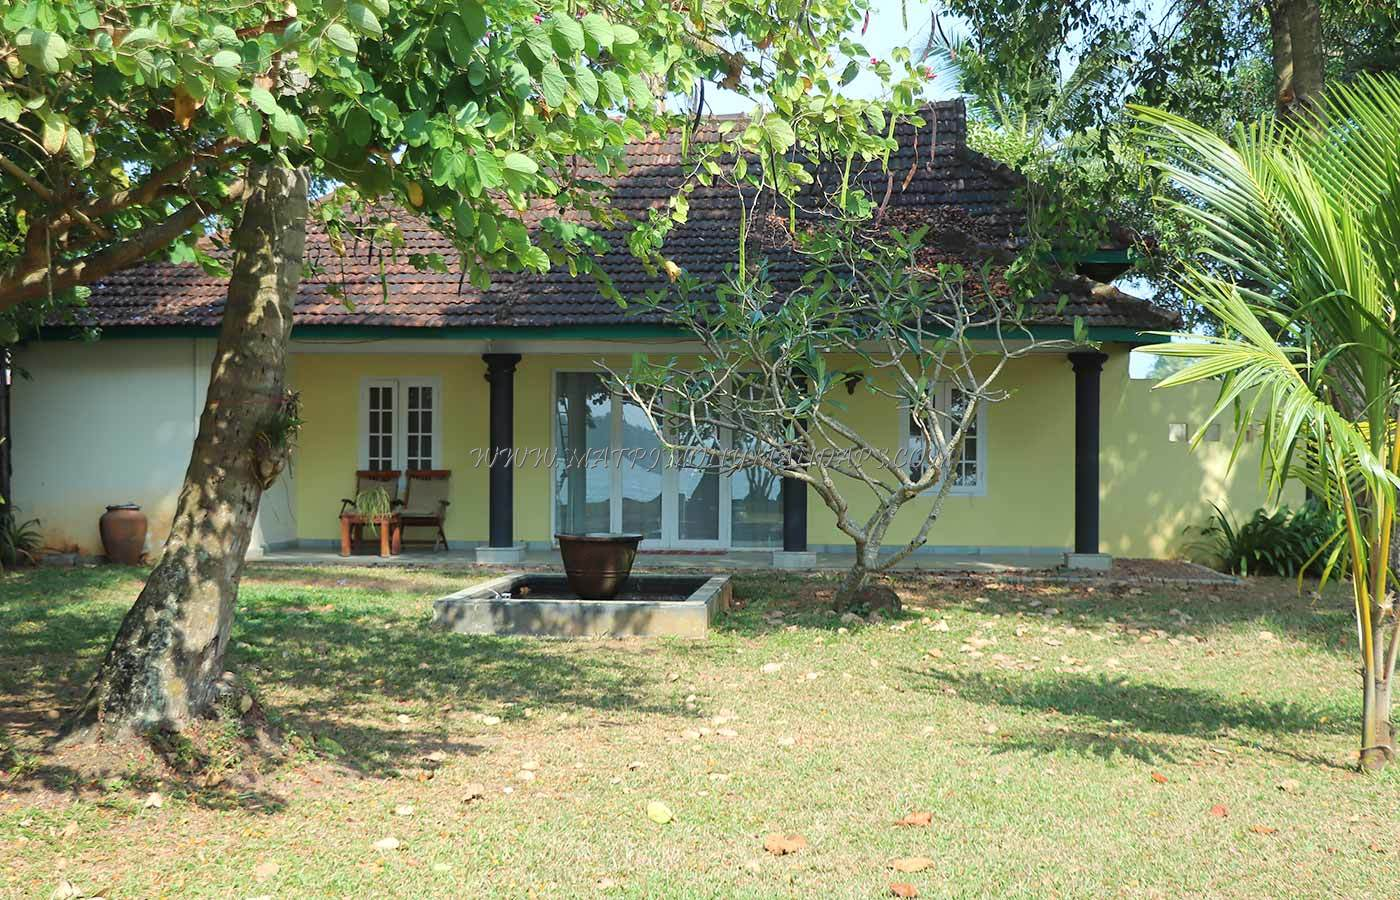 Find the availability of the Isla - Open Lawn in Panangad, Kochi and avail special offers